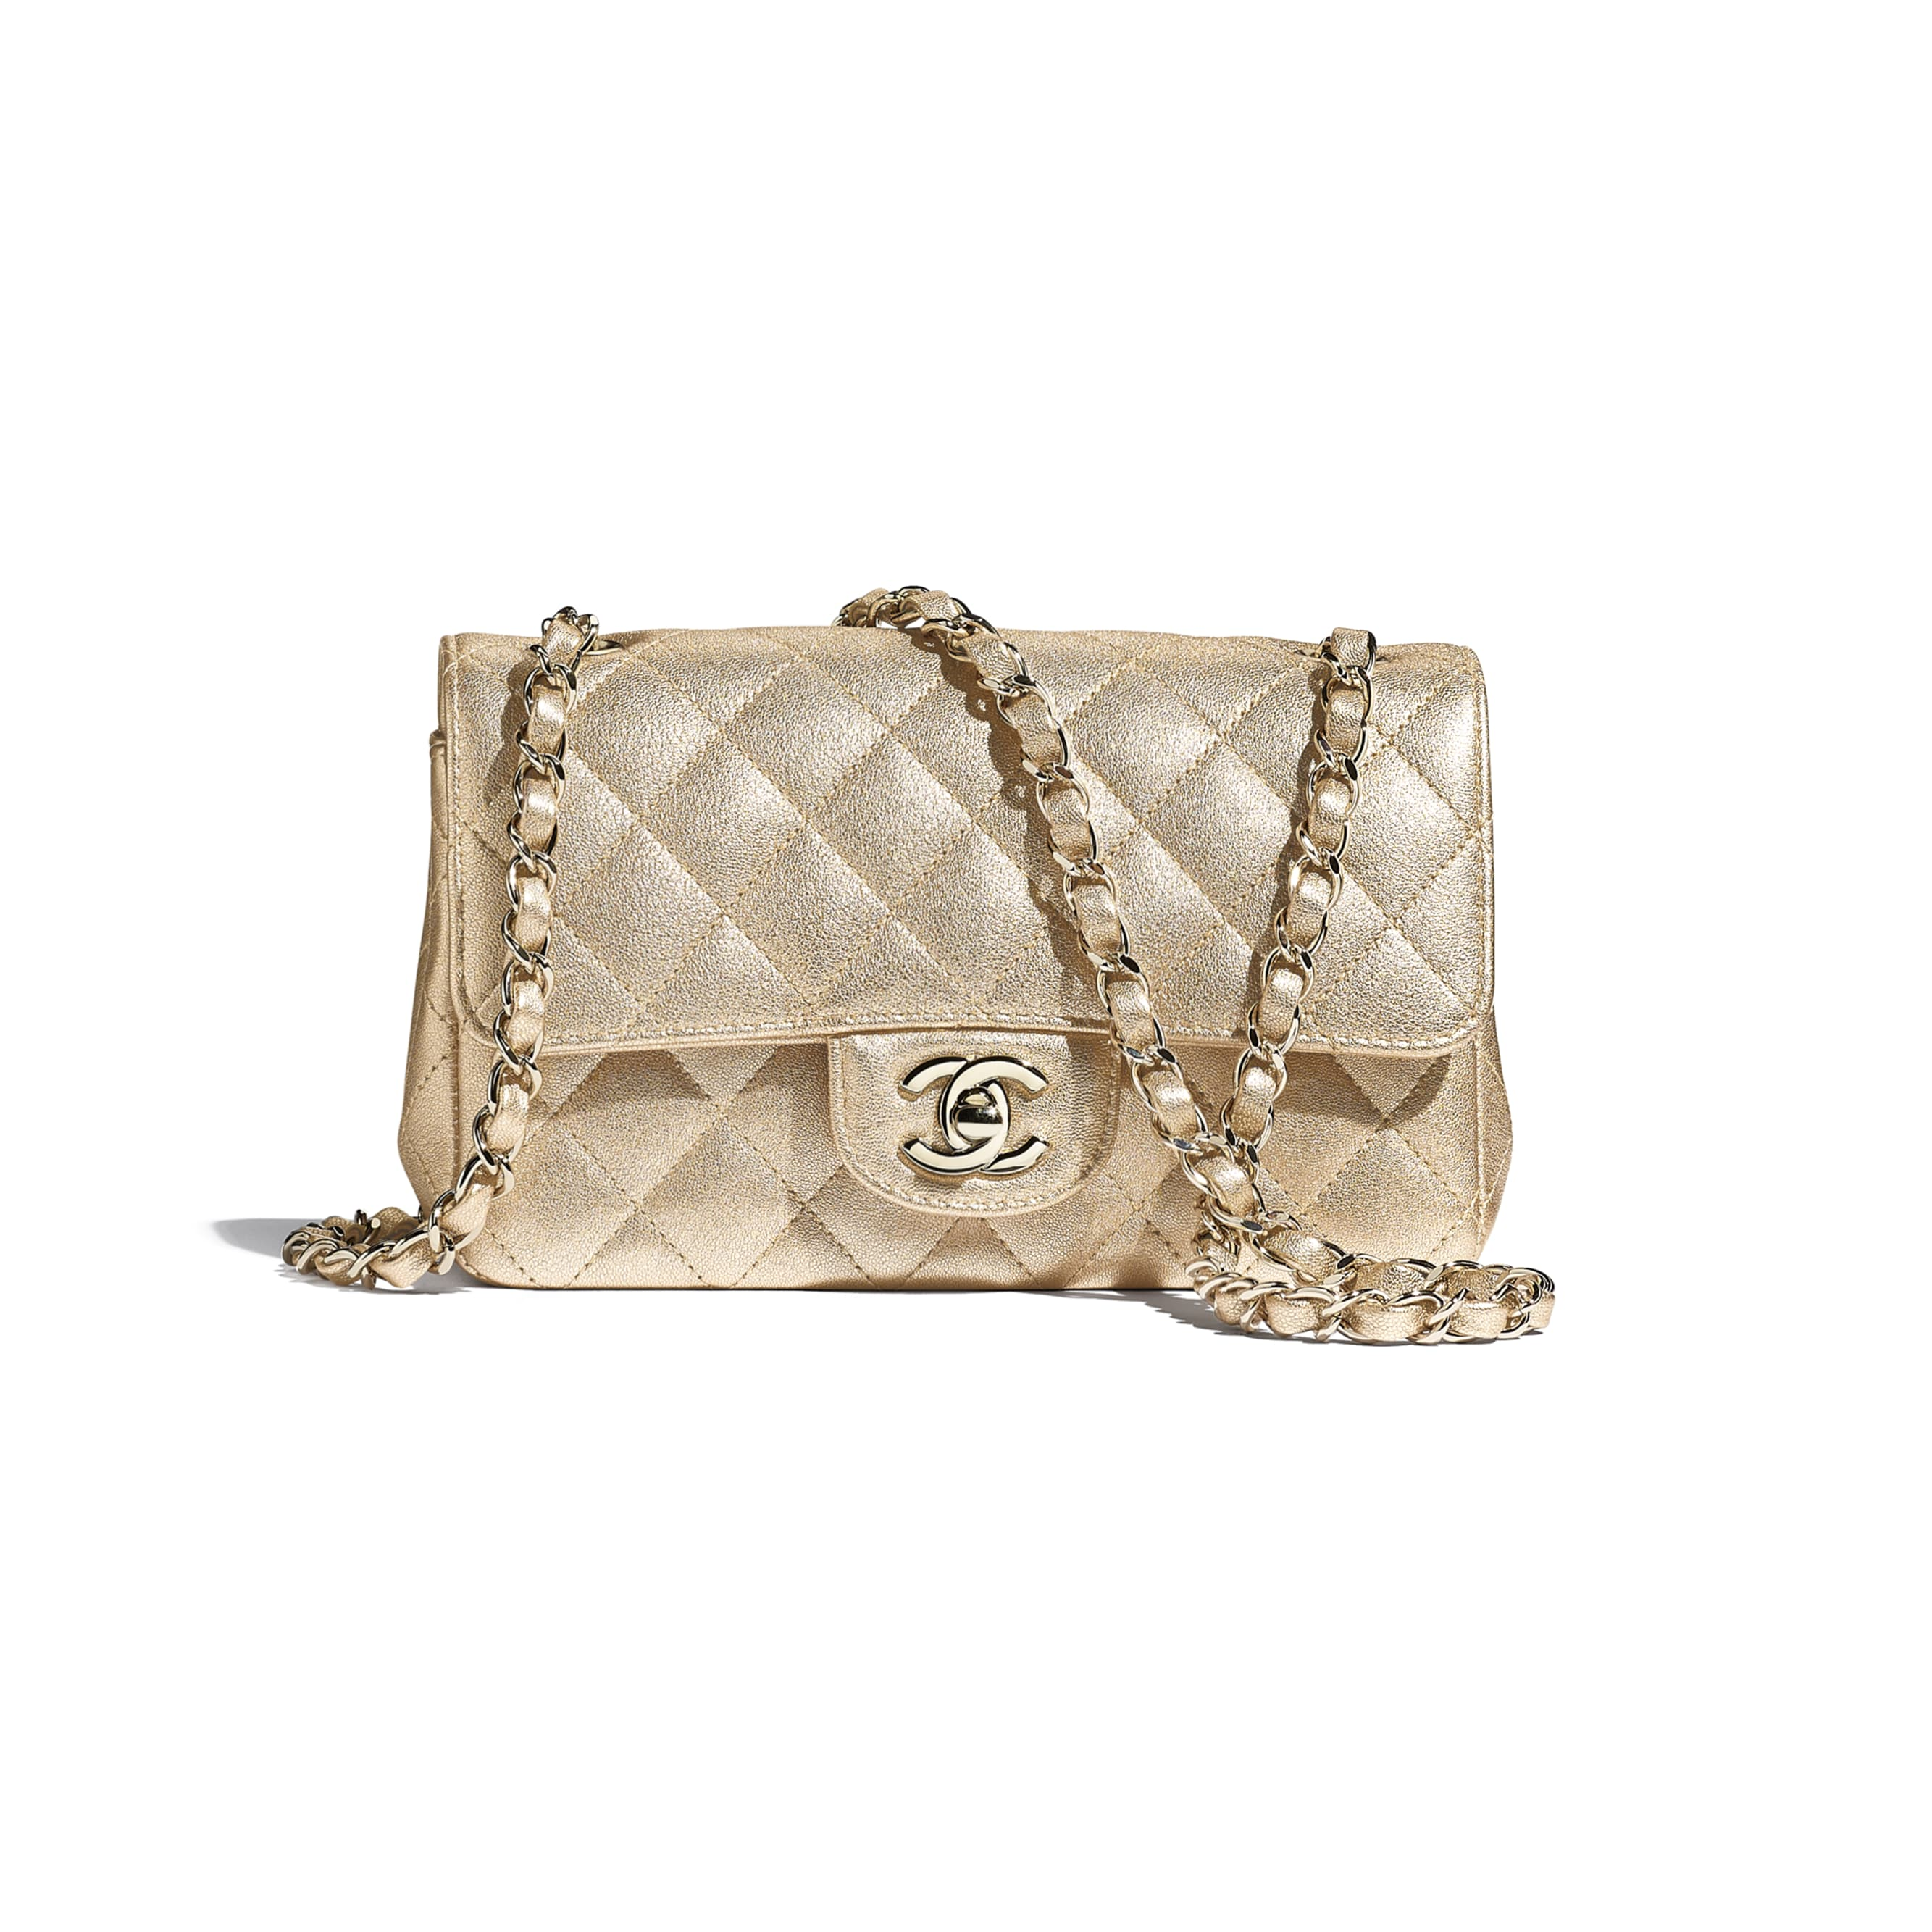 Mini Flap Bag - Gold - Metallic Lambskin & Gold Metal - CHANEL - Default view - see standard sized version